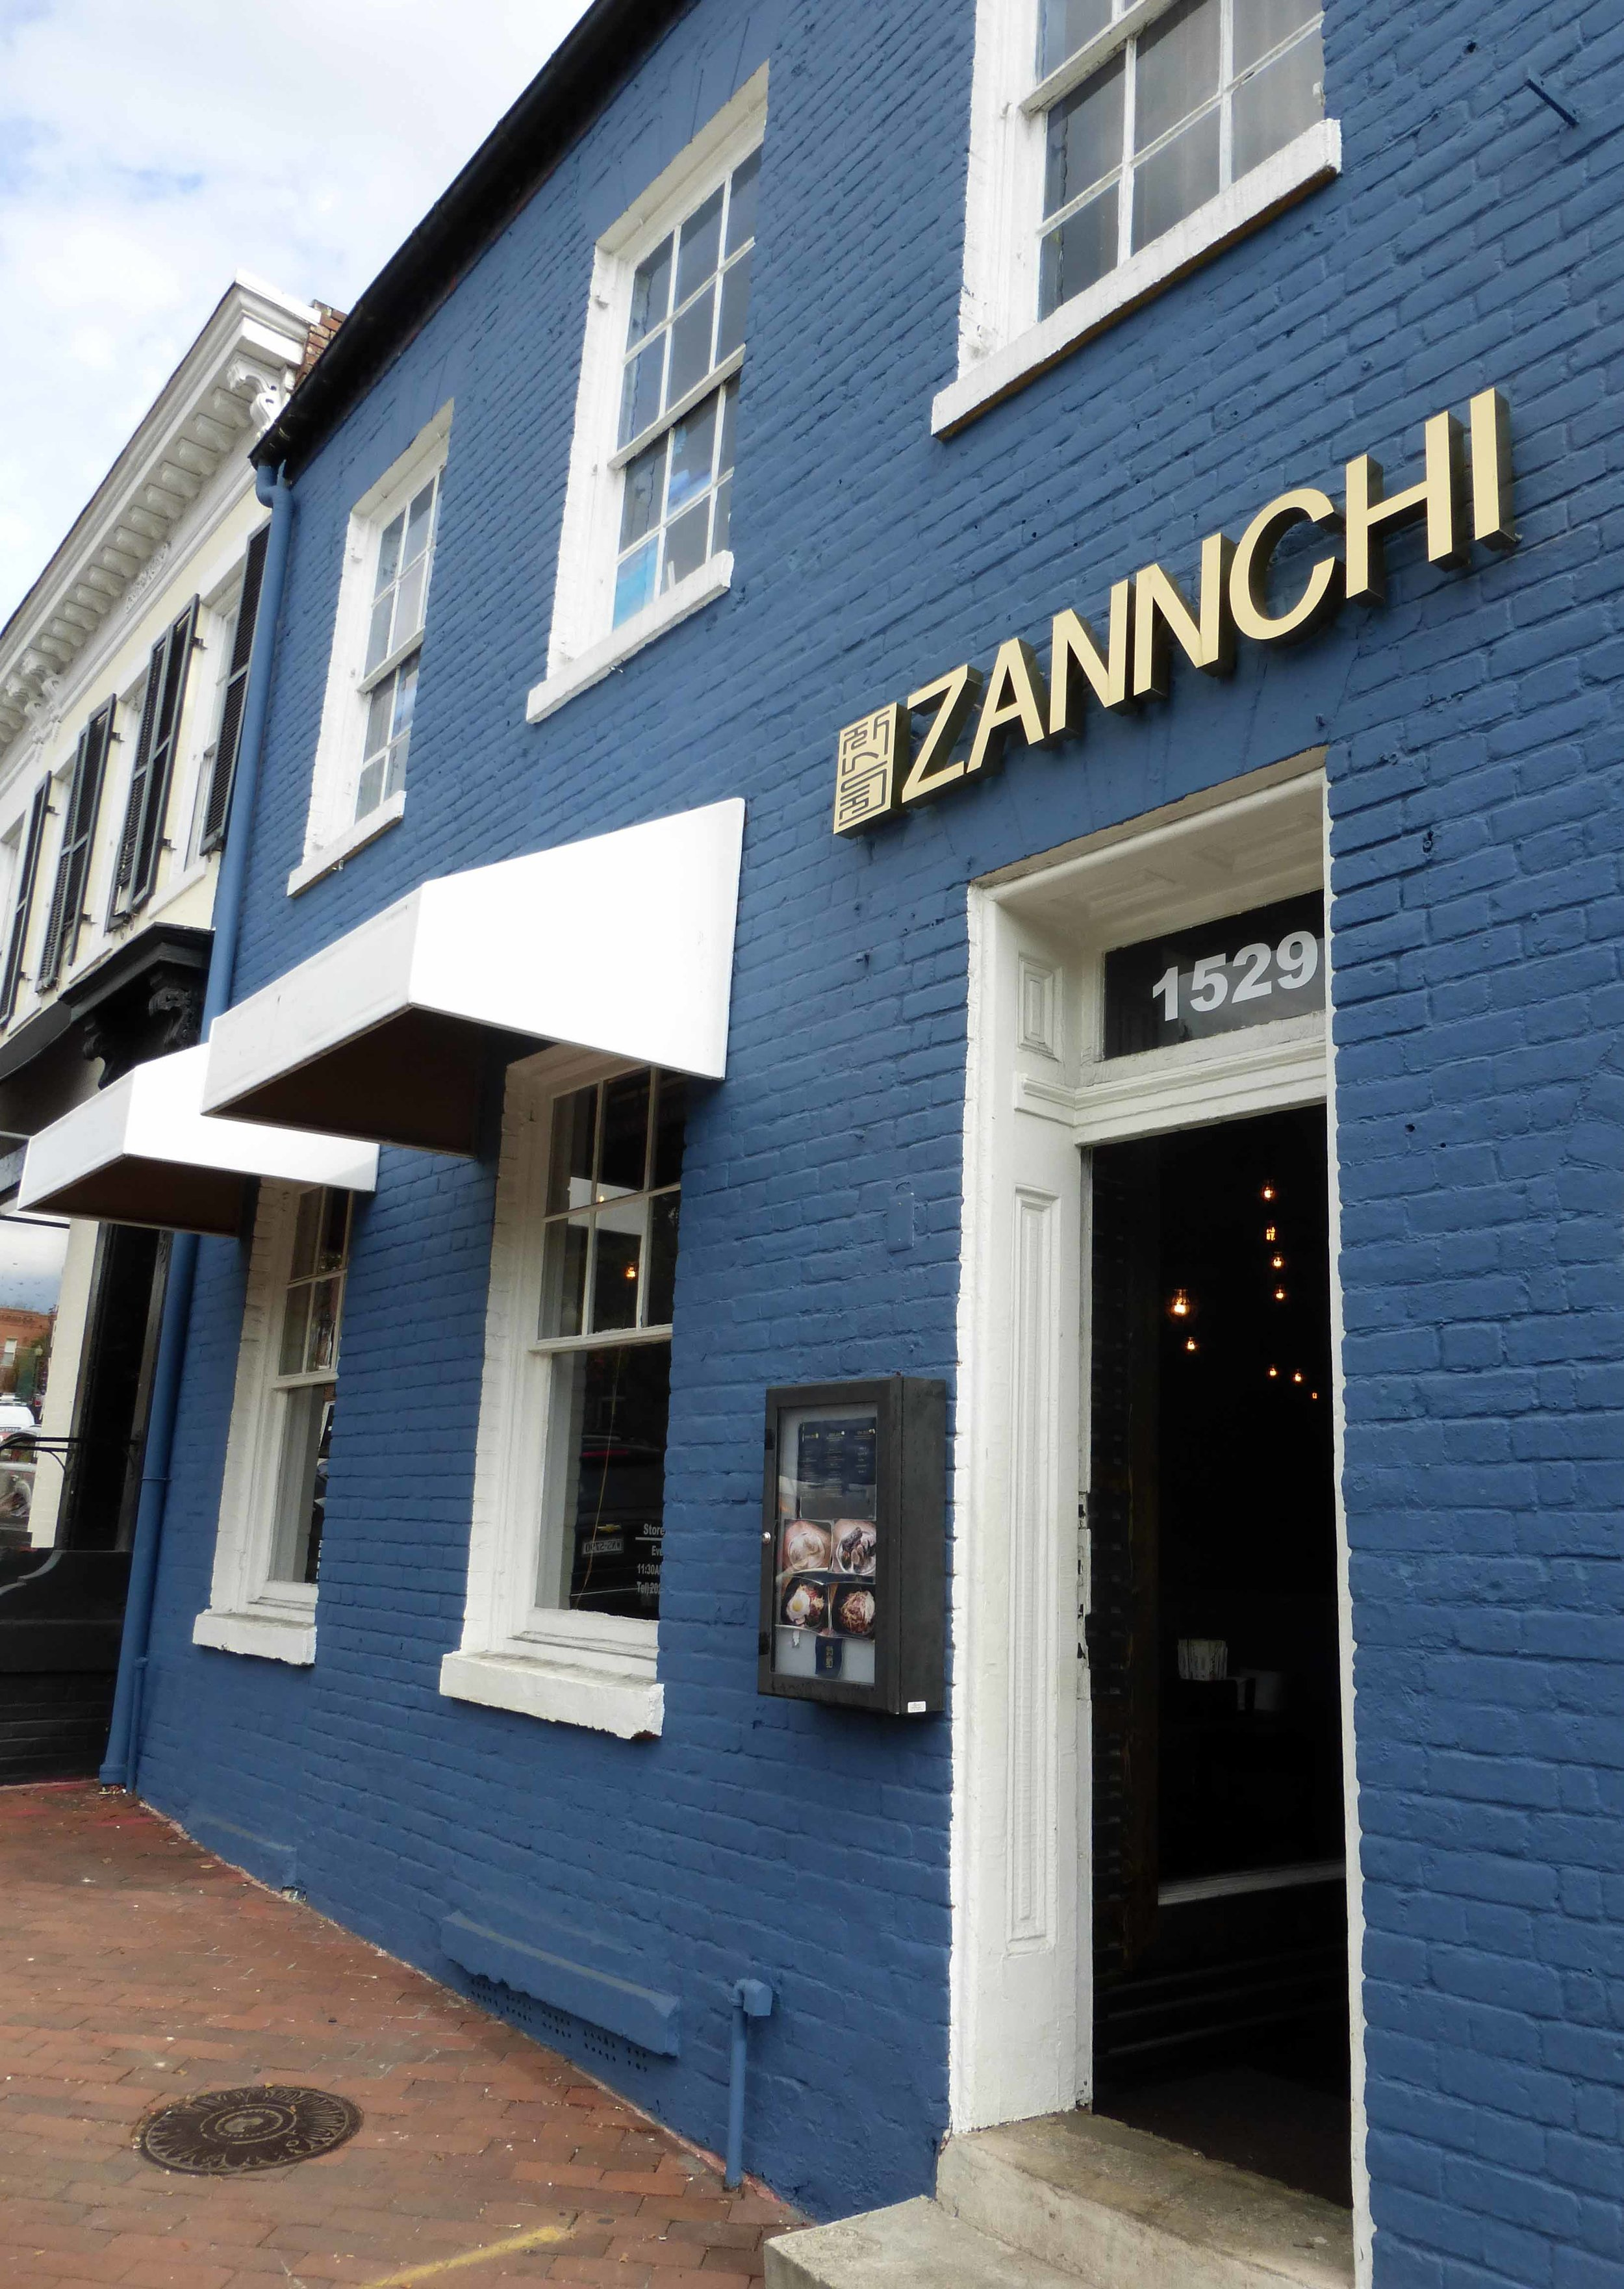 Zannchi is located on the ground floor of a typical Georgetown row house.